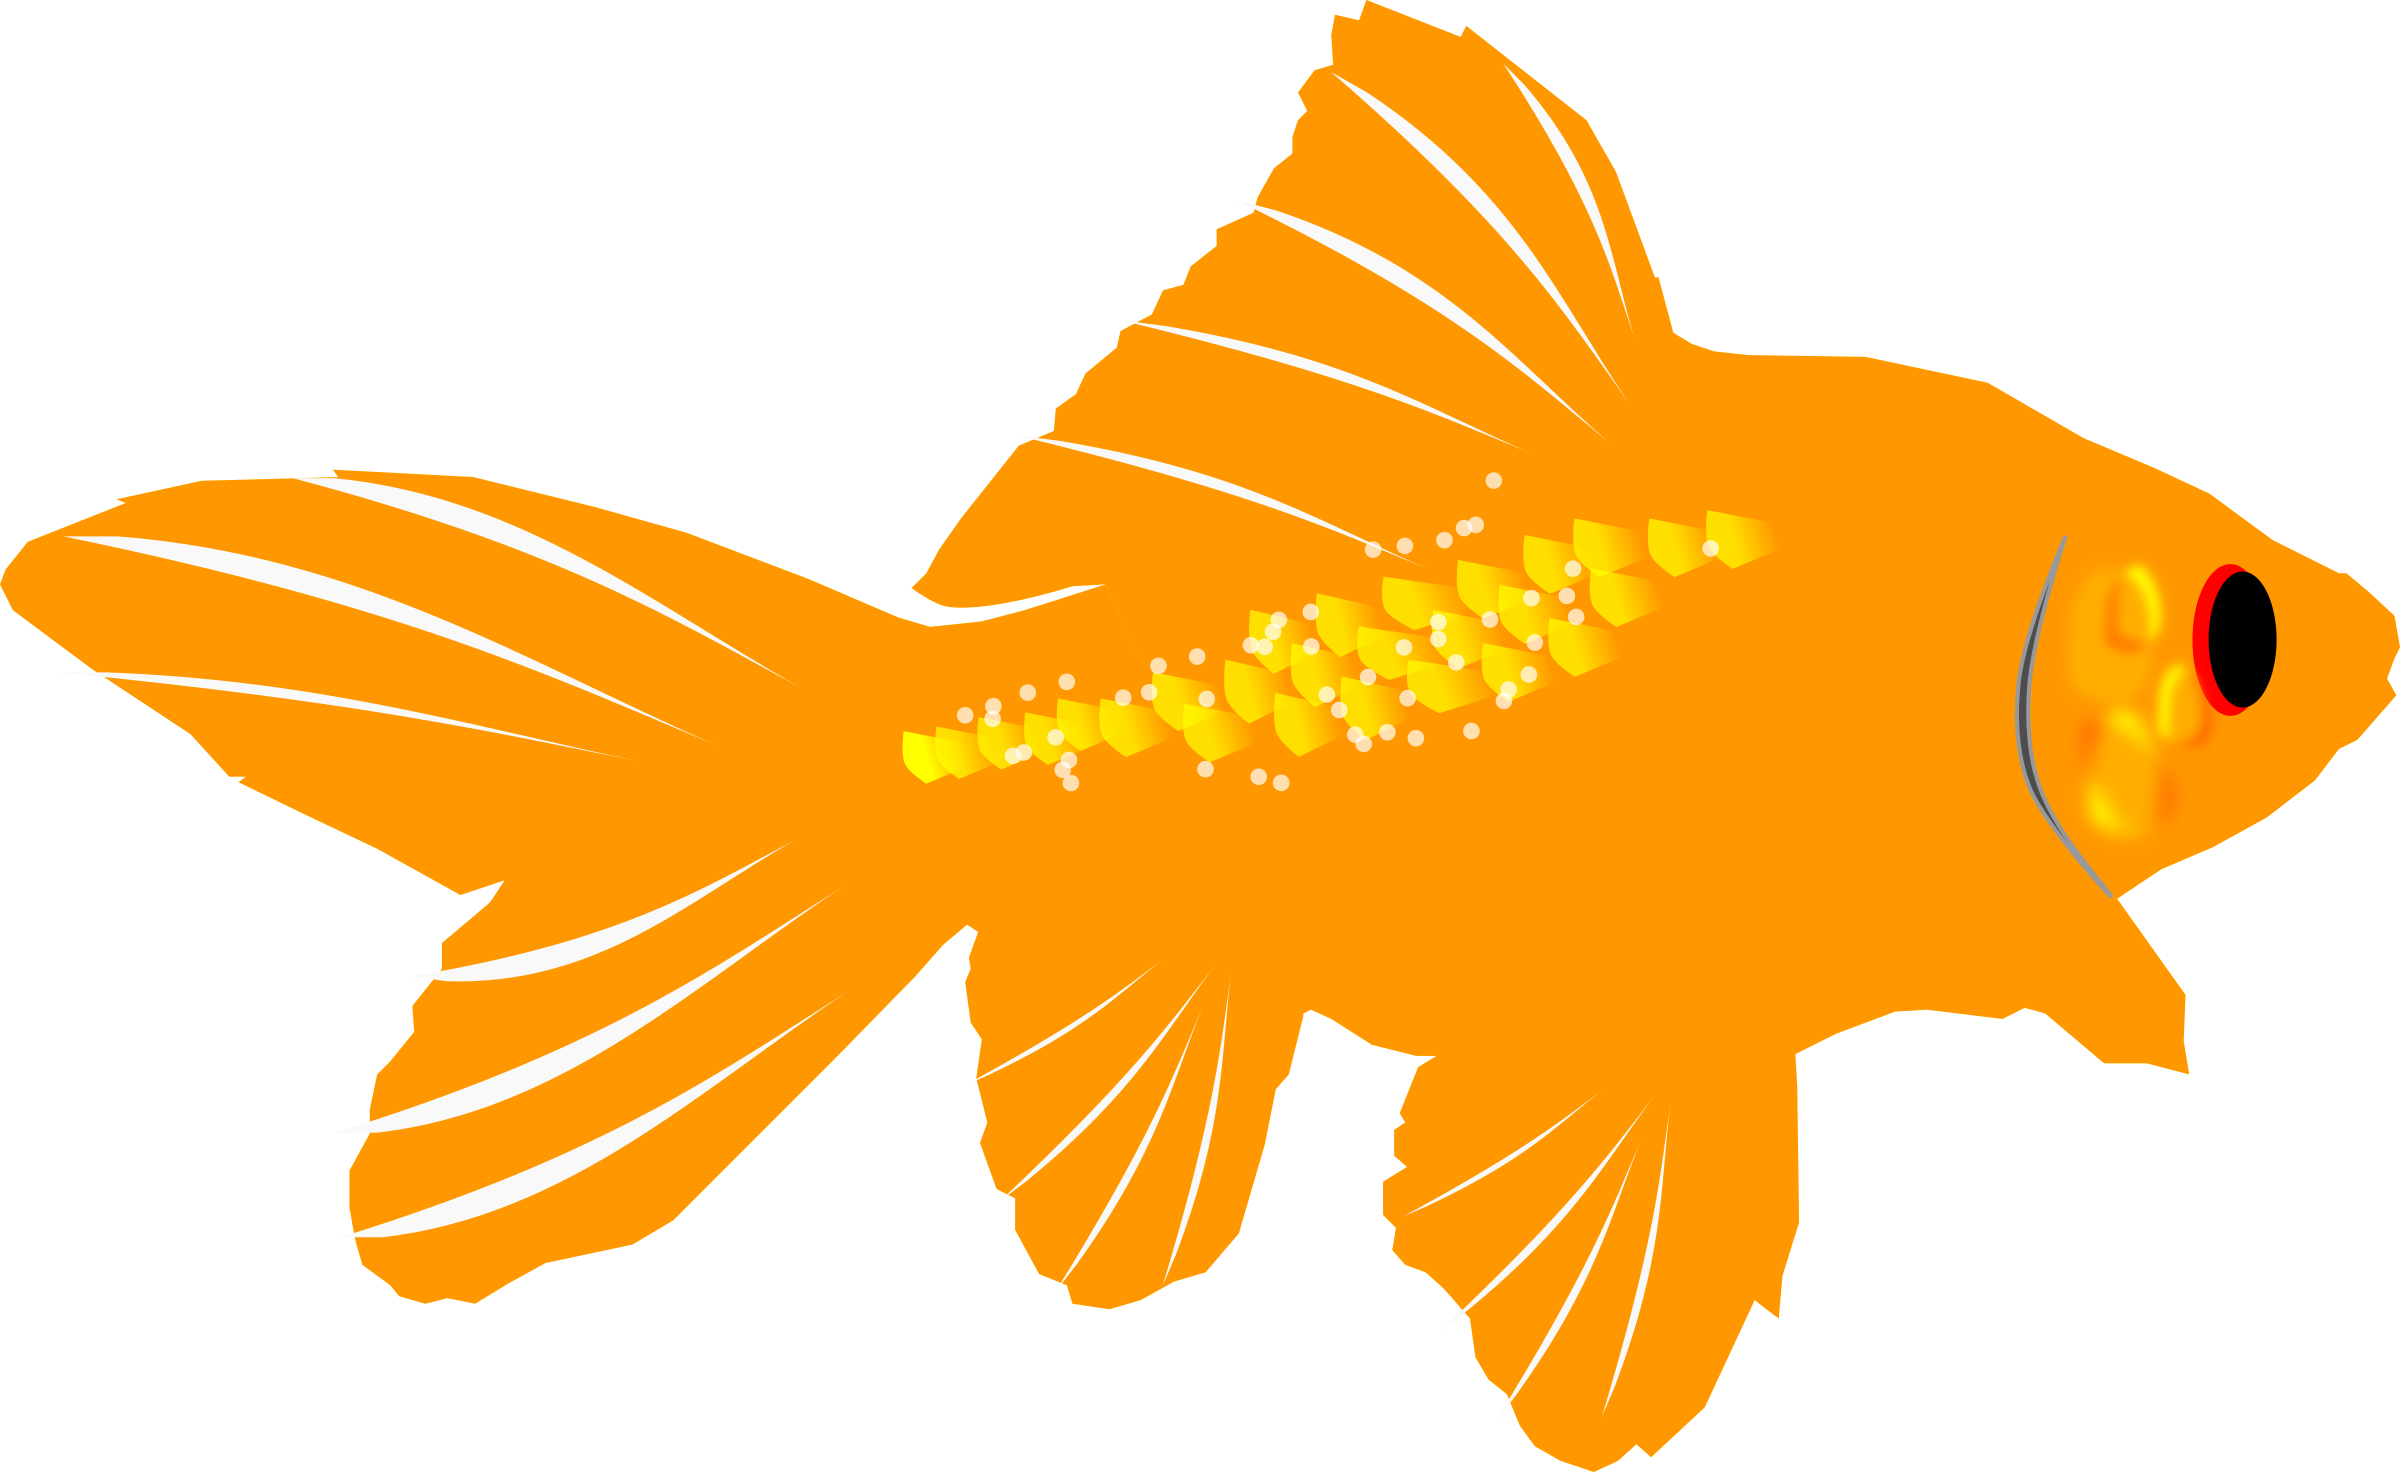 graphic freeuse . Clipart goldfish